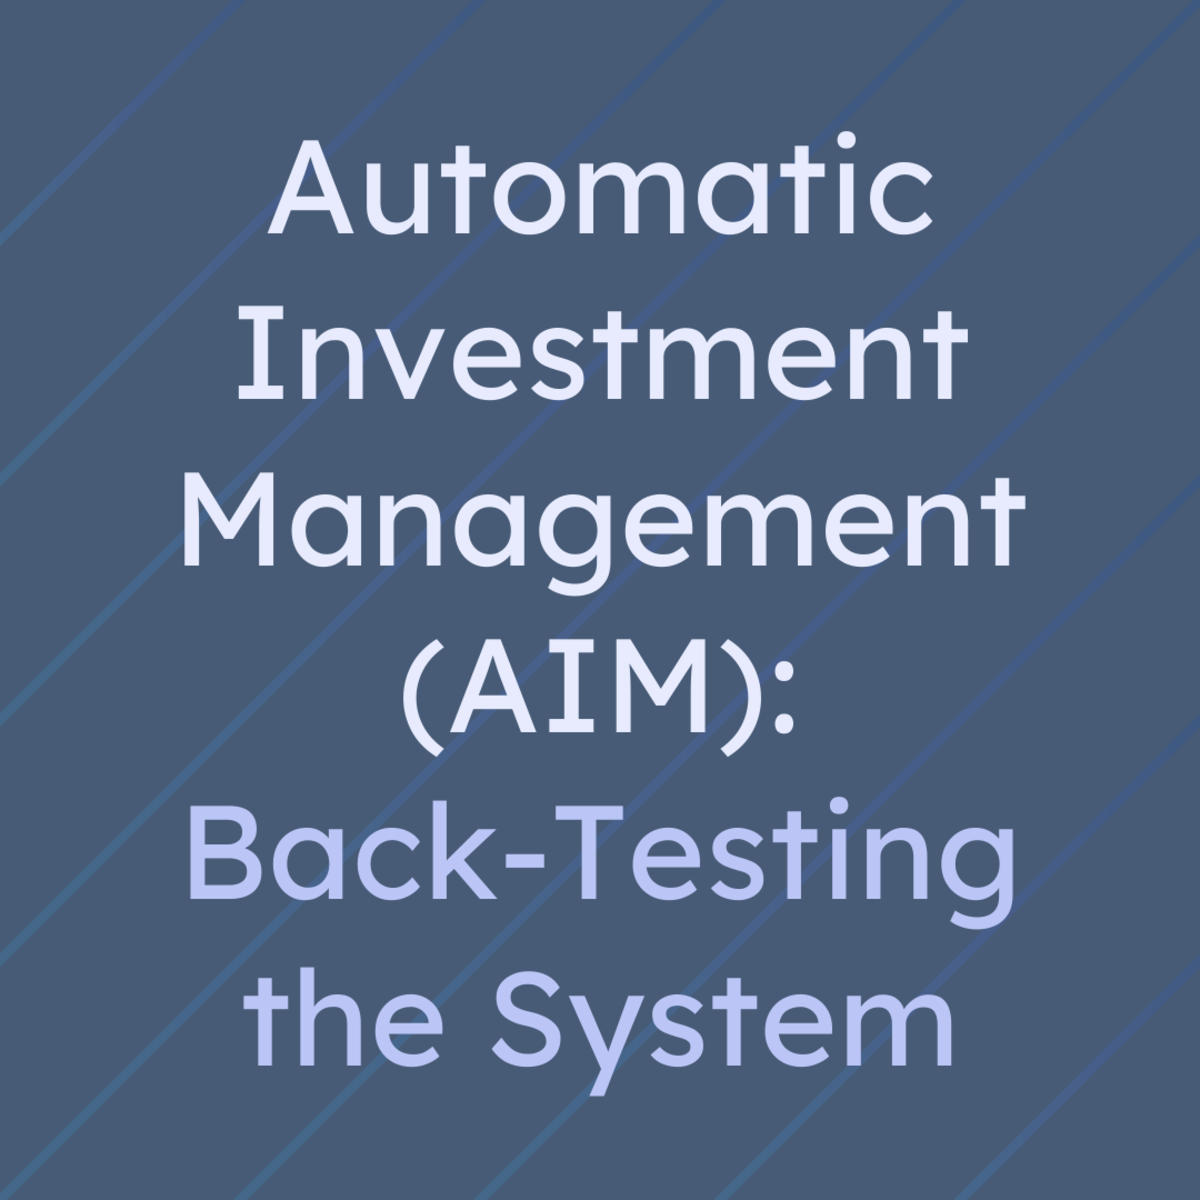 Explore a test of Robert Lichello's AIM system for timing investments.